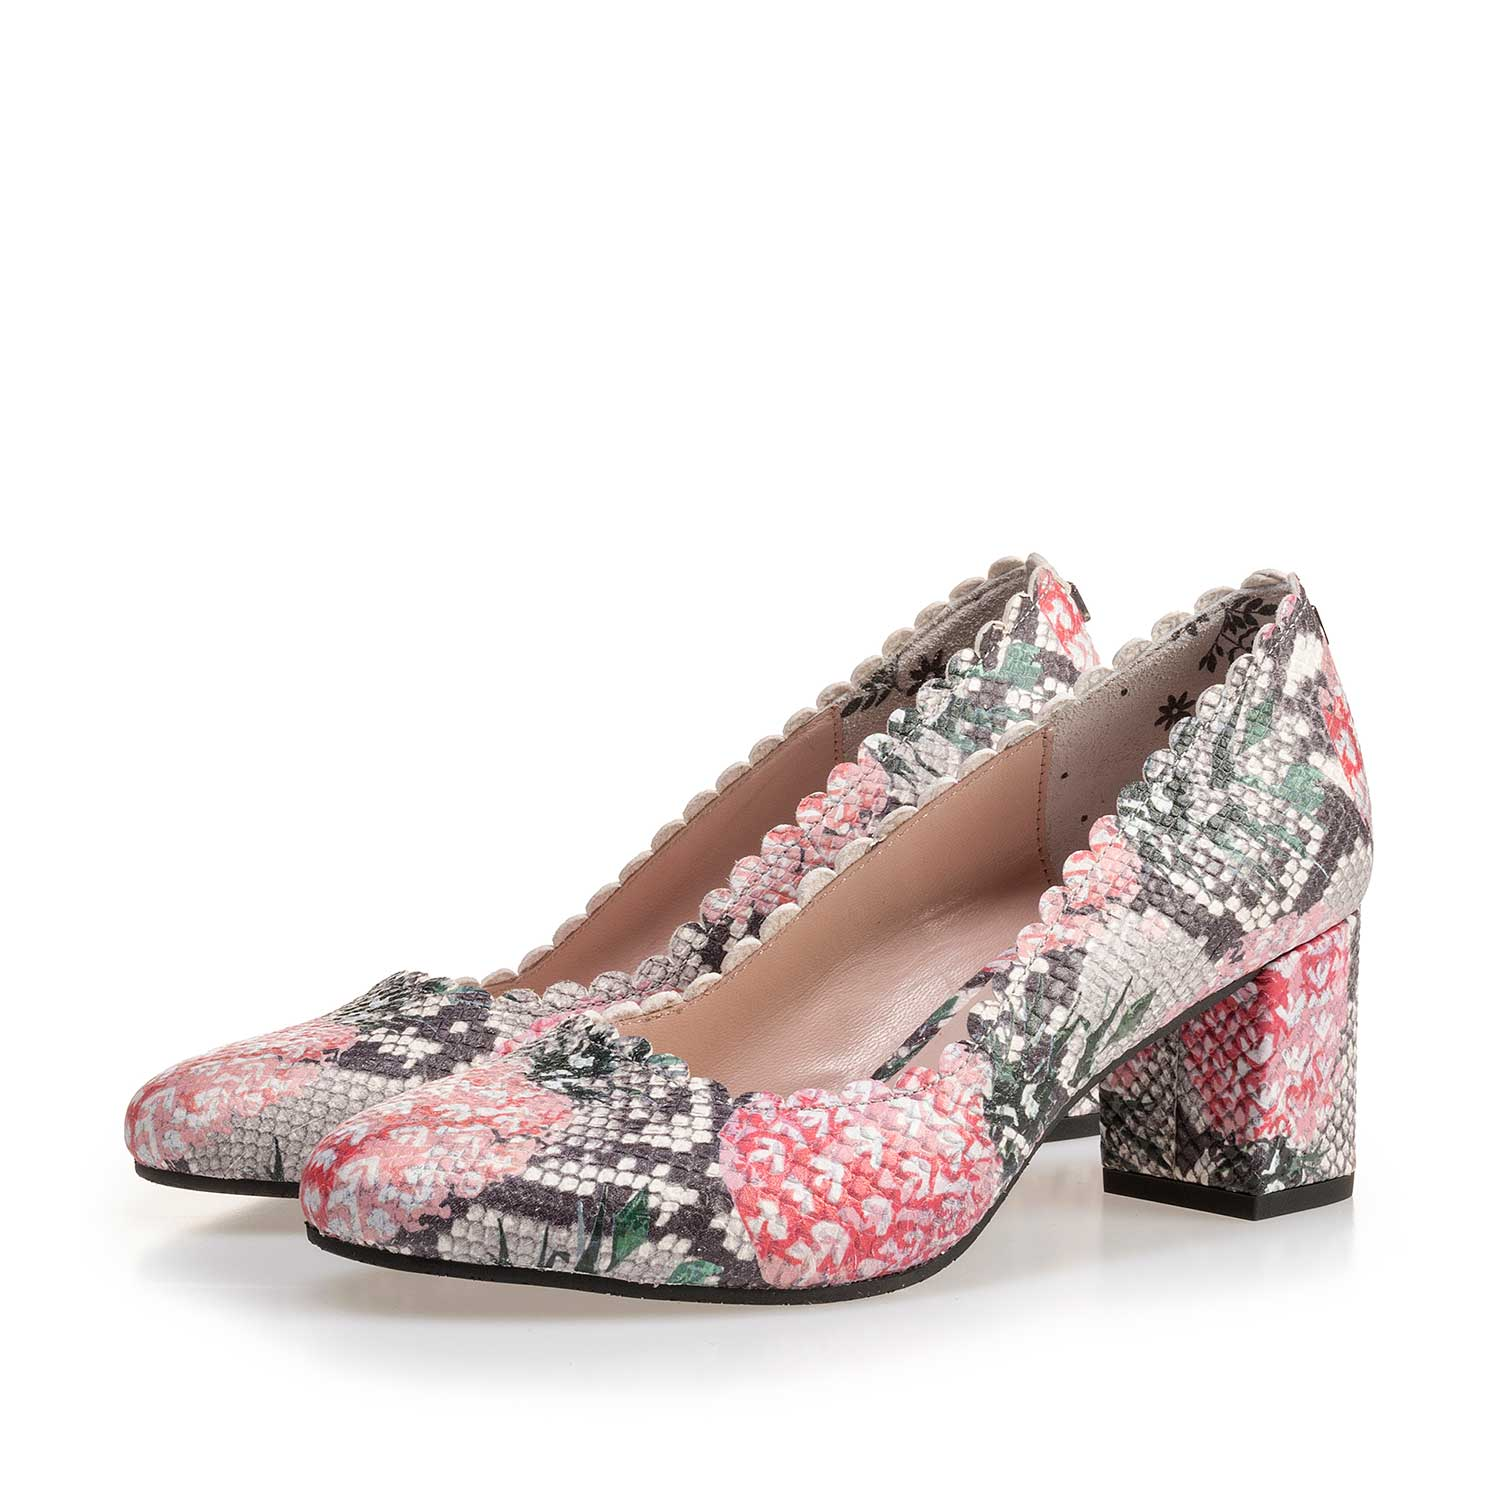 85226/04 - Multi-coloured leather pumps with printed motif